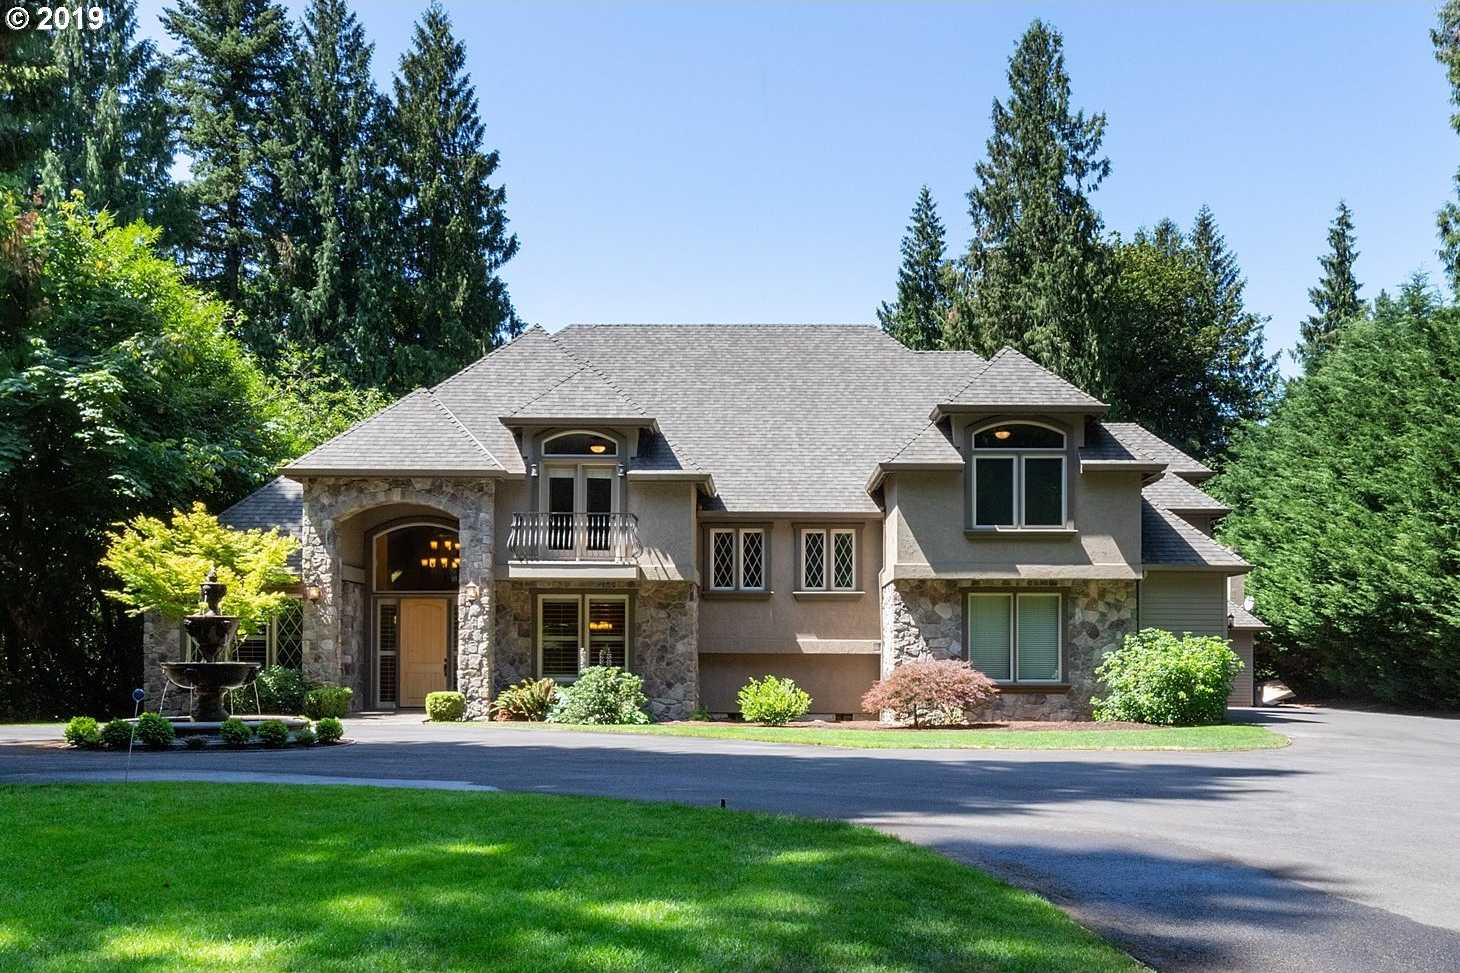 $1,550,000 - 4Br/5Ba -  for Sale in West Linn